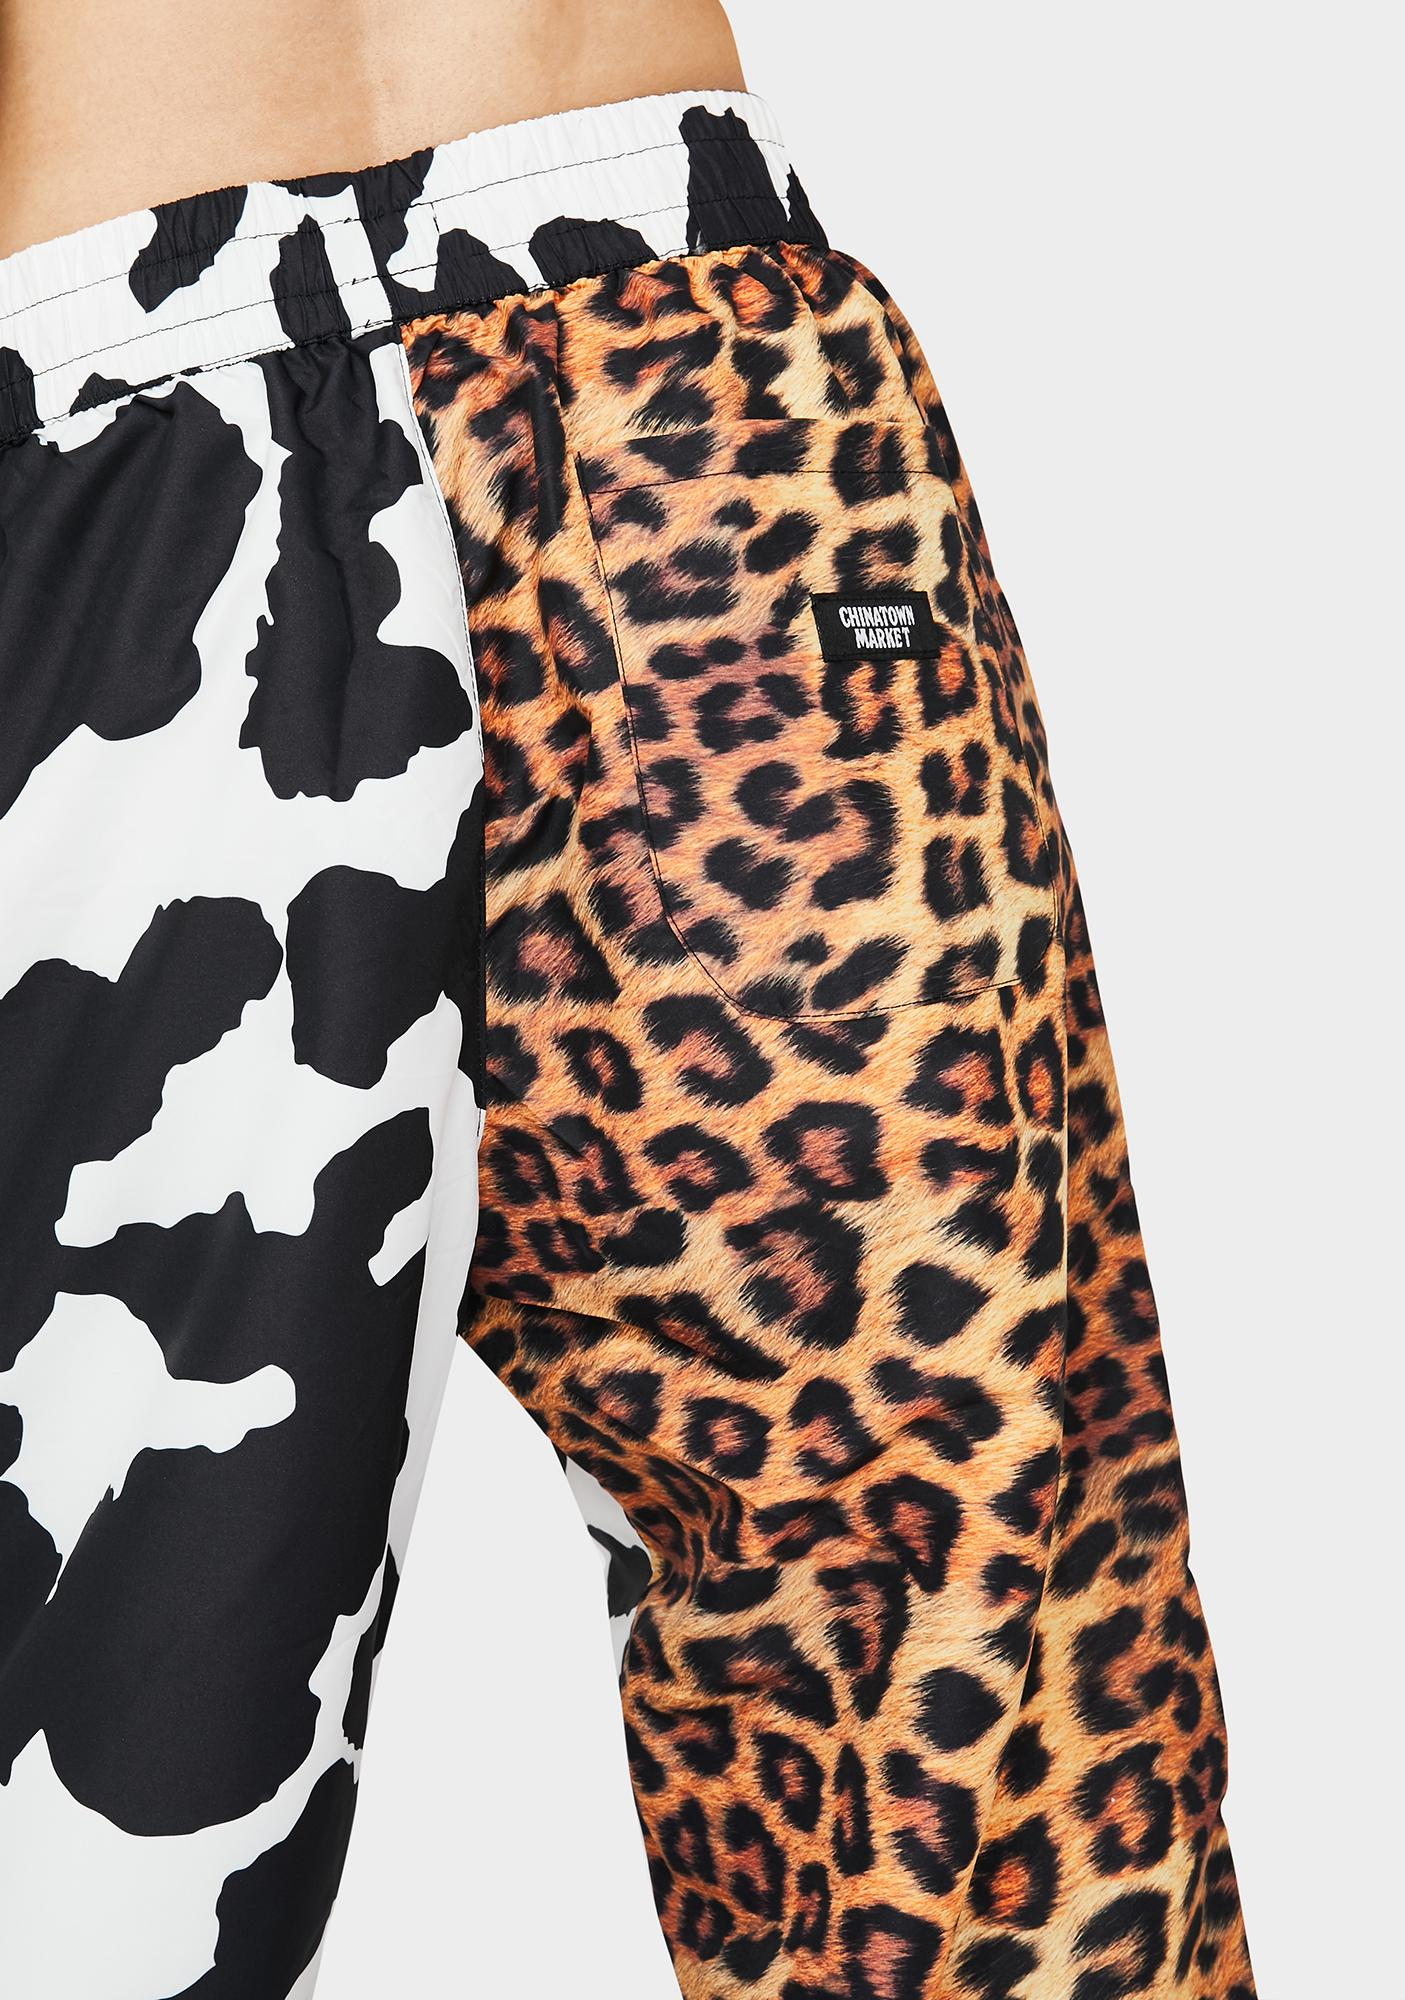 CHINATOWN MARKET All Over Animal Print Pants